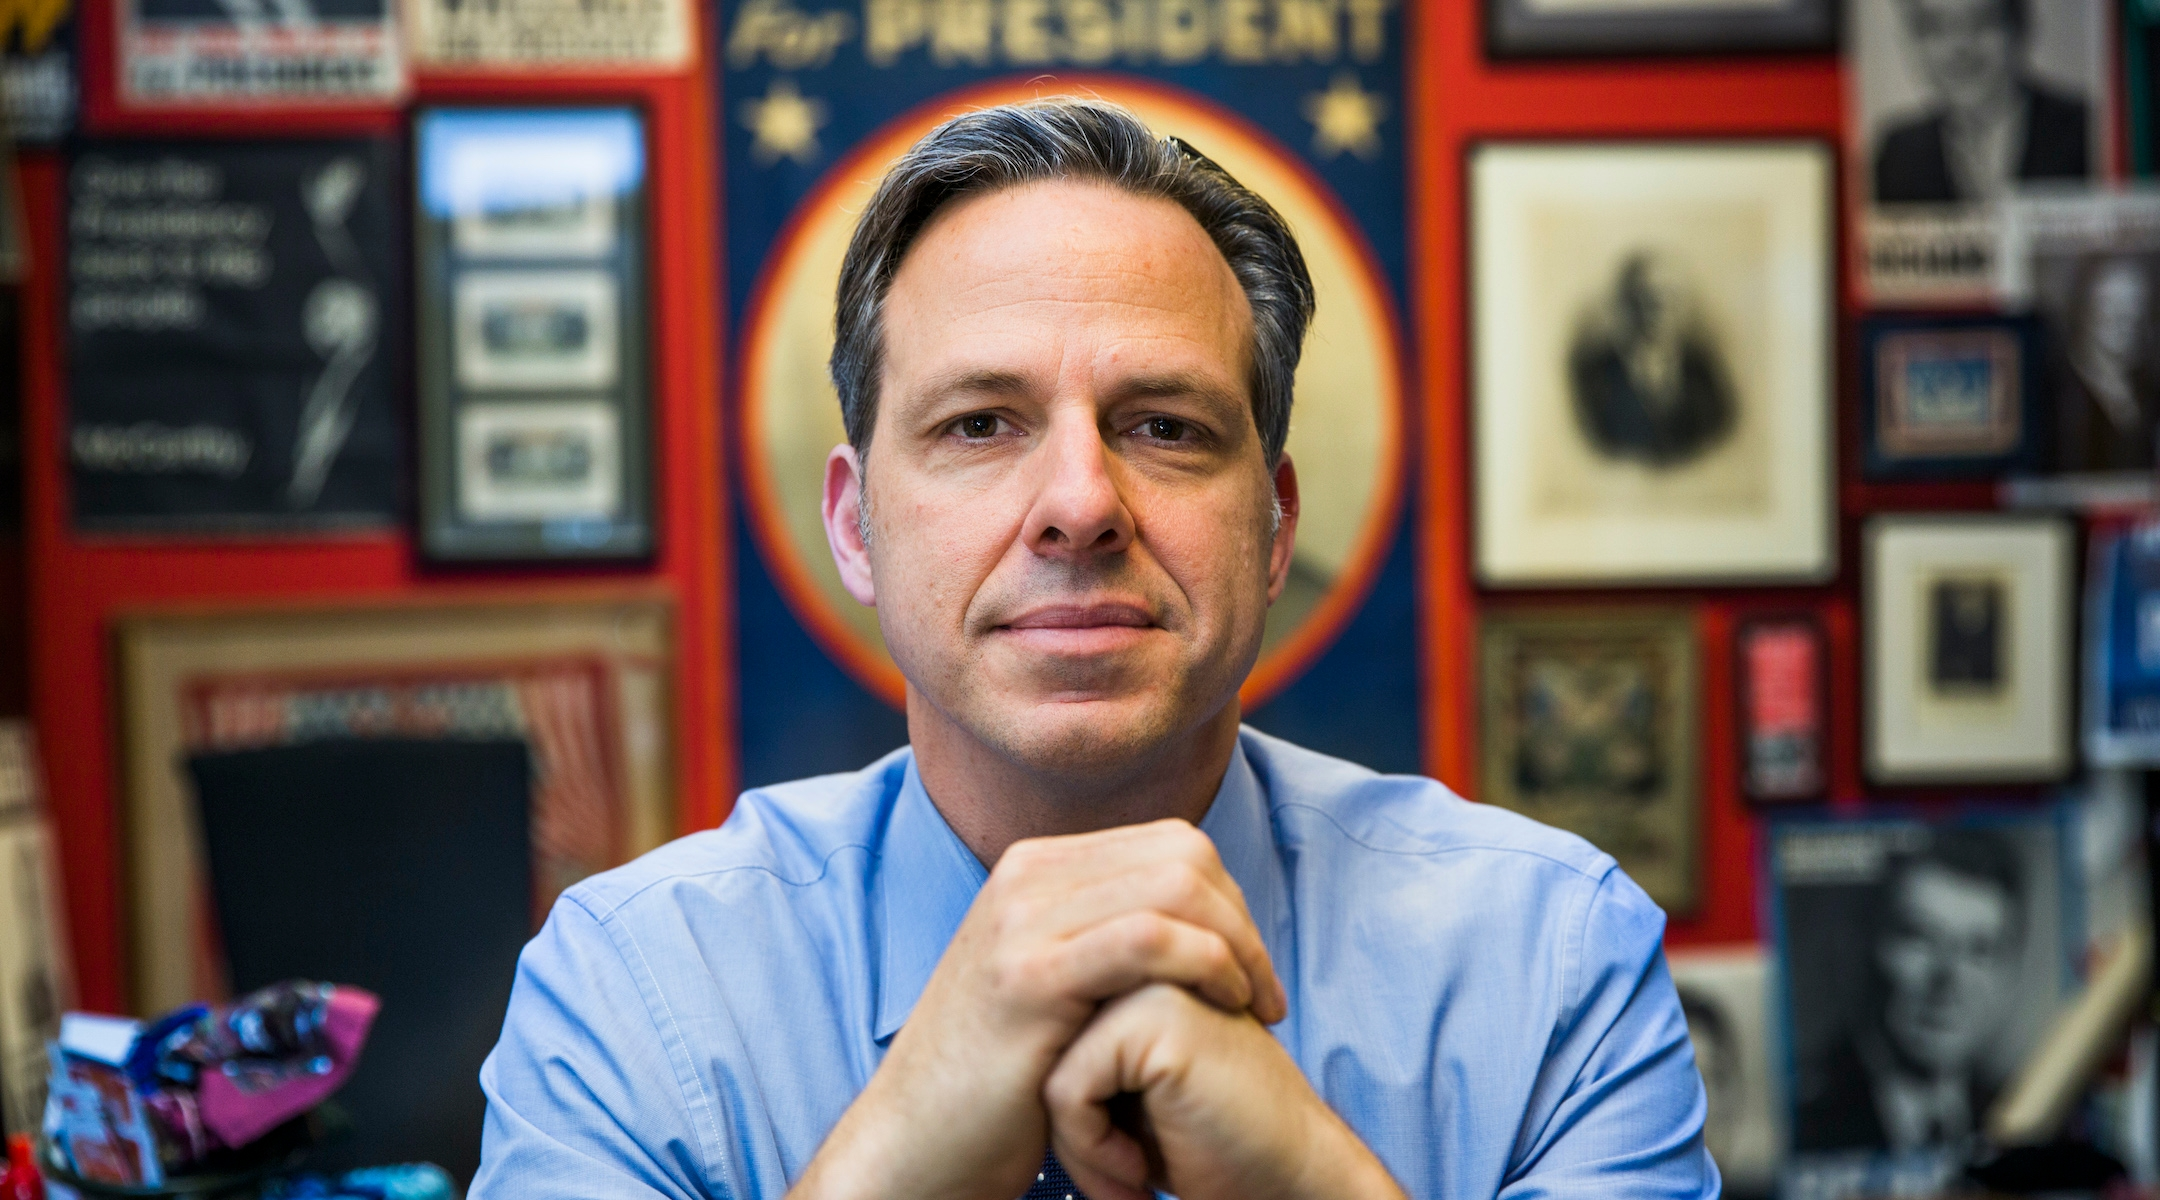 For Jake Tapper, being the rabbi of TV news comes easy